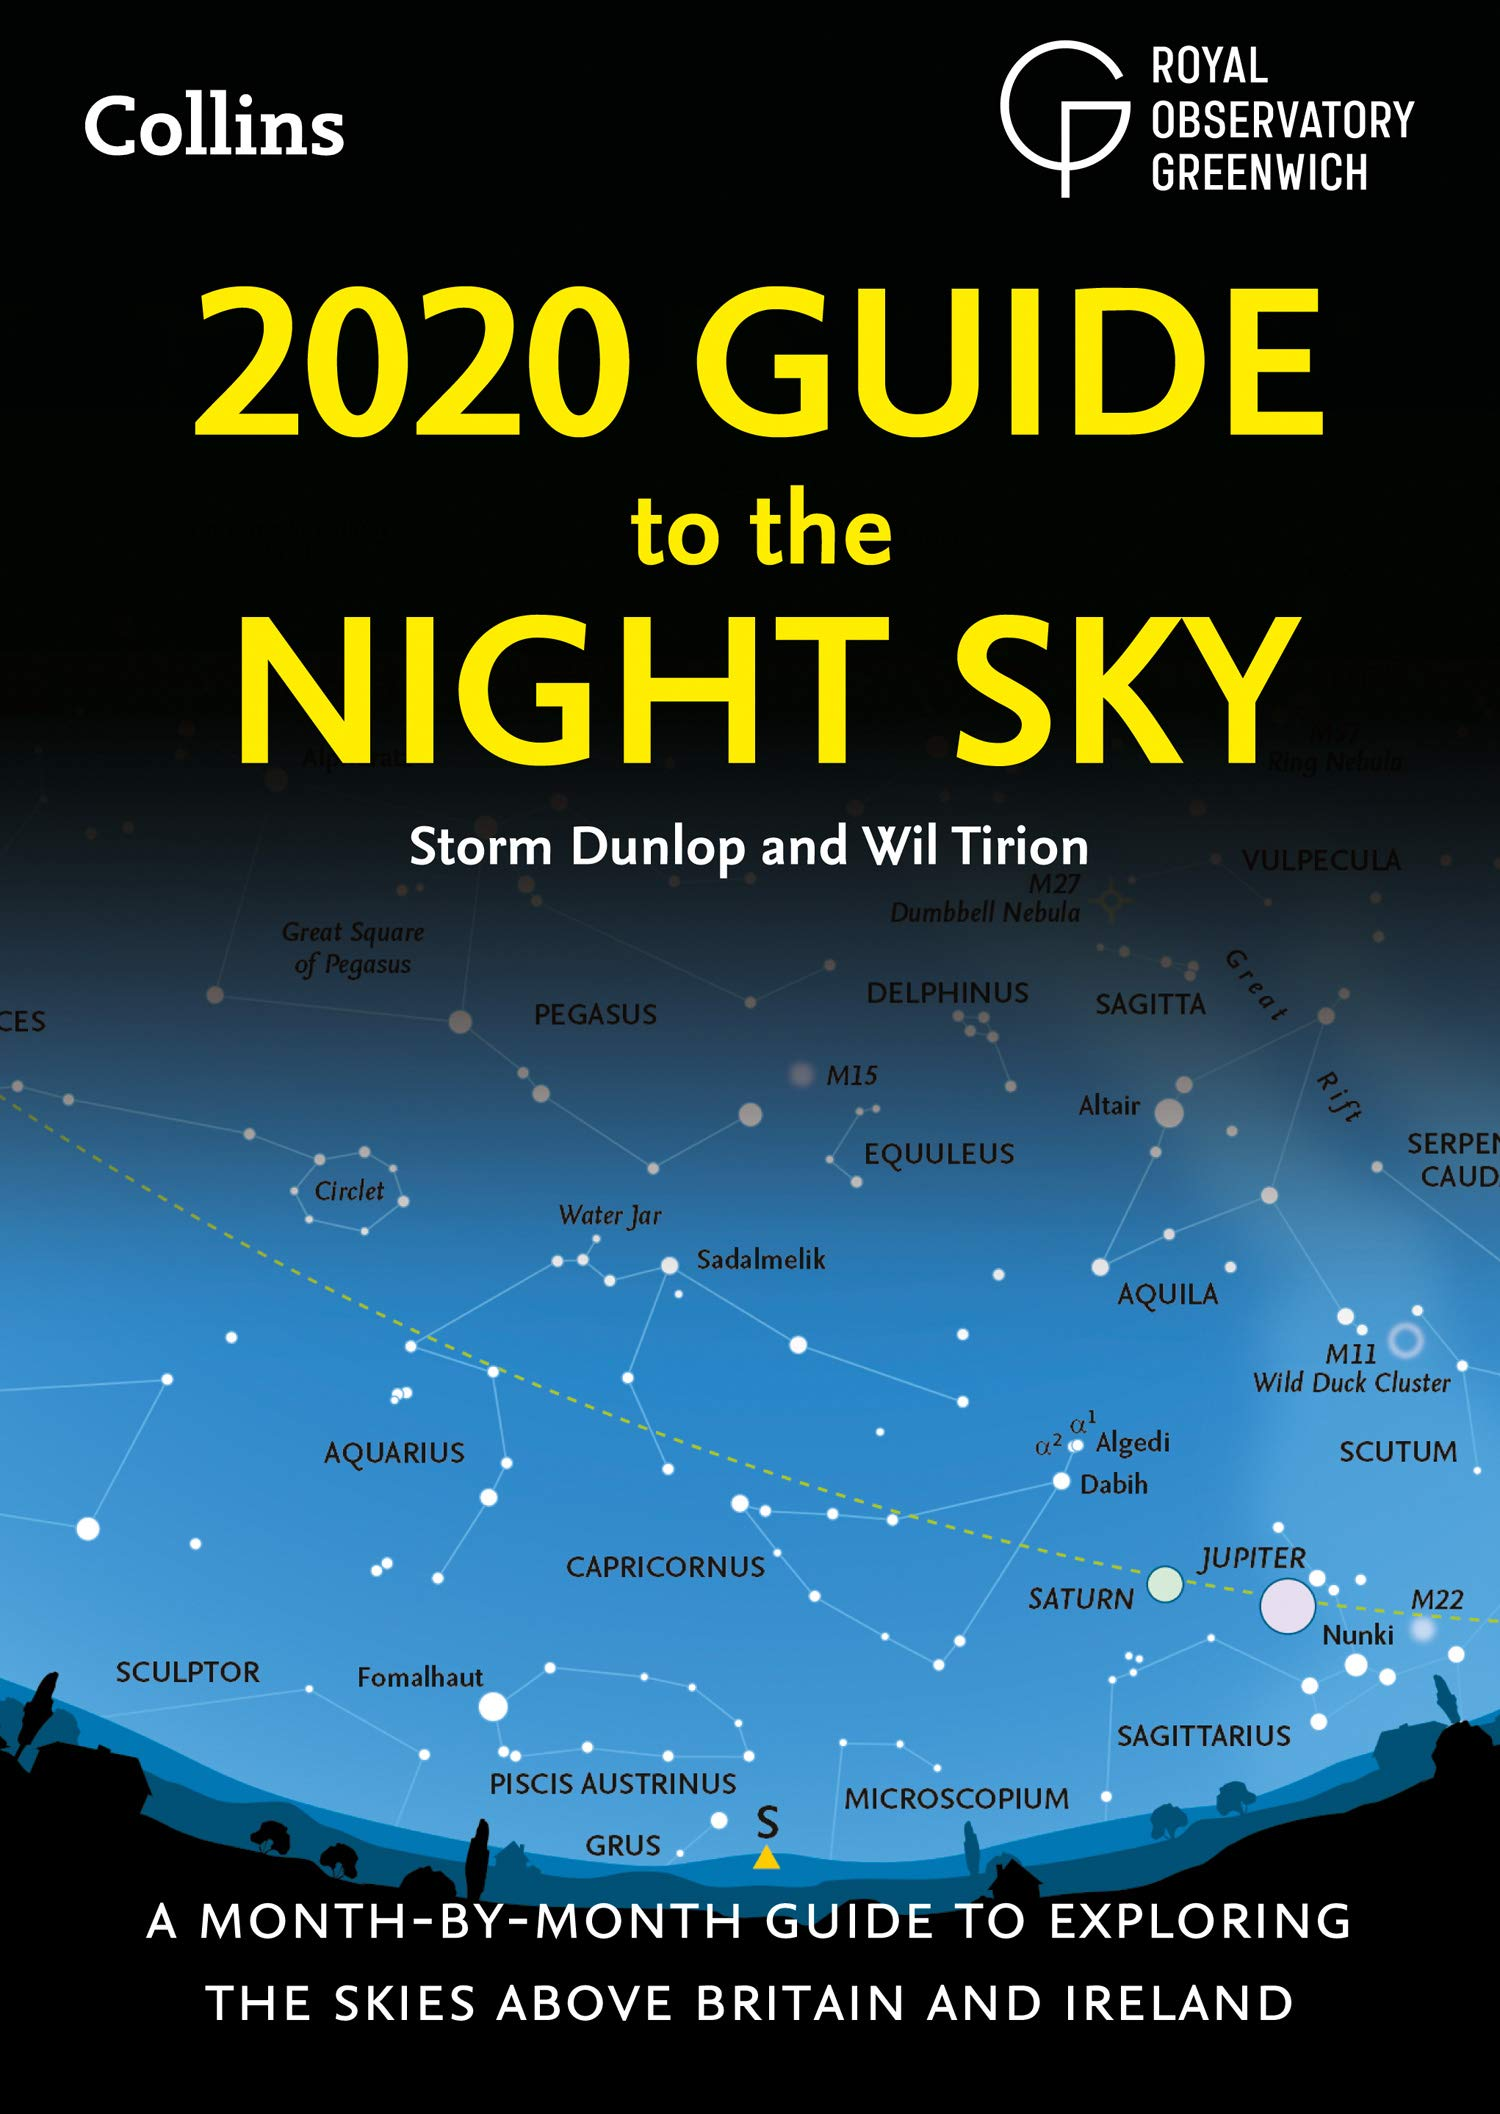 2020 Guide to the Night Sky: A month-by-month guide to exploring the skies above Britain and Ireland 1